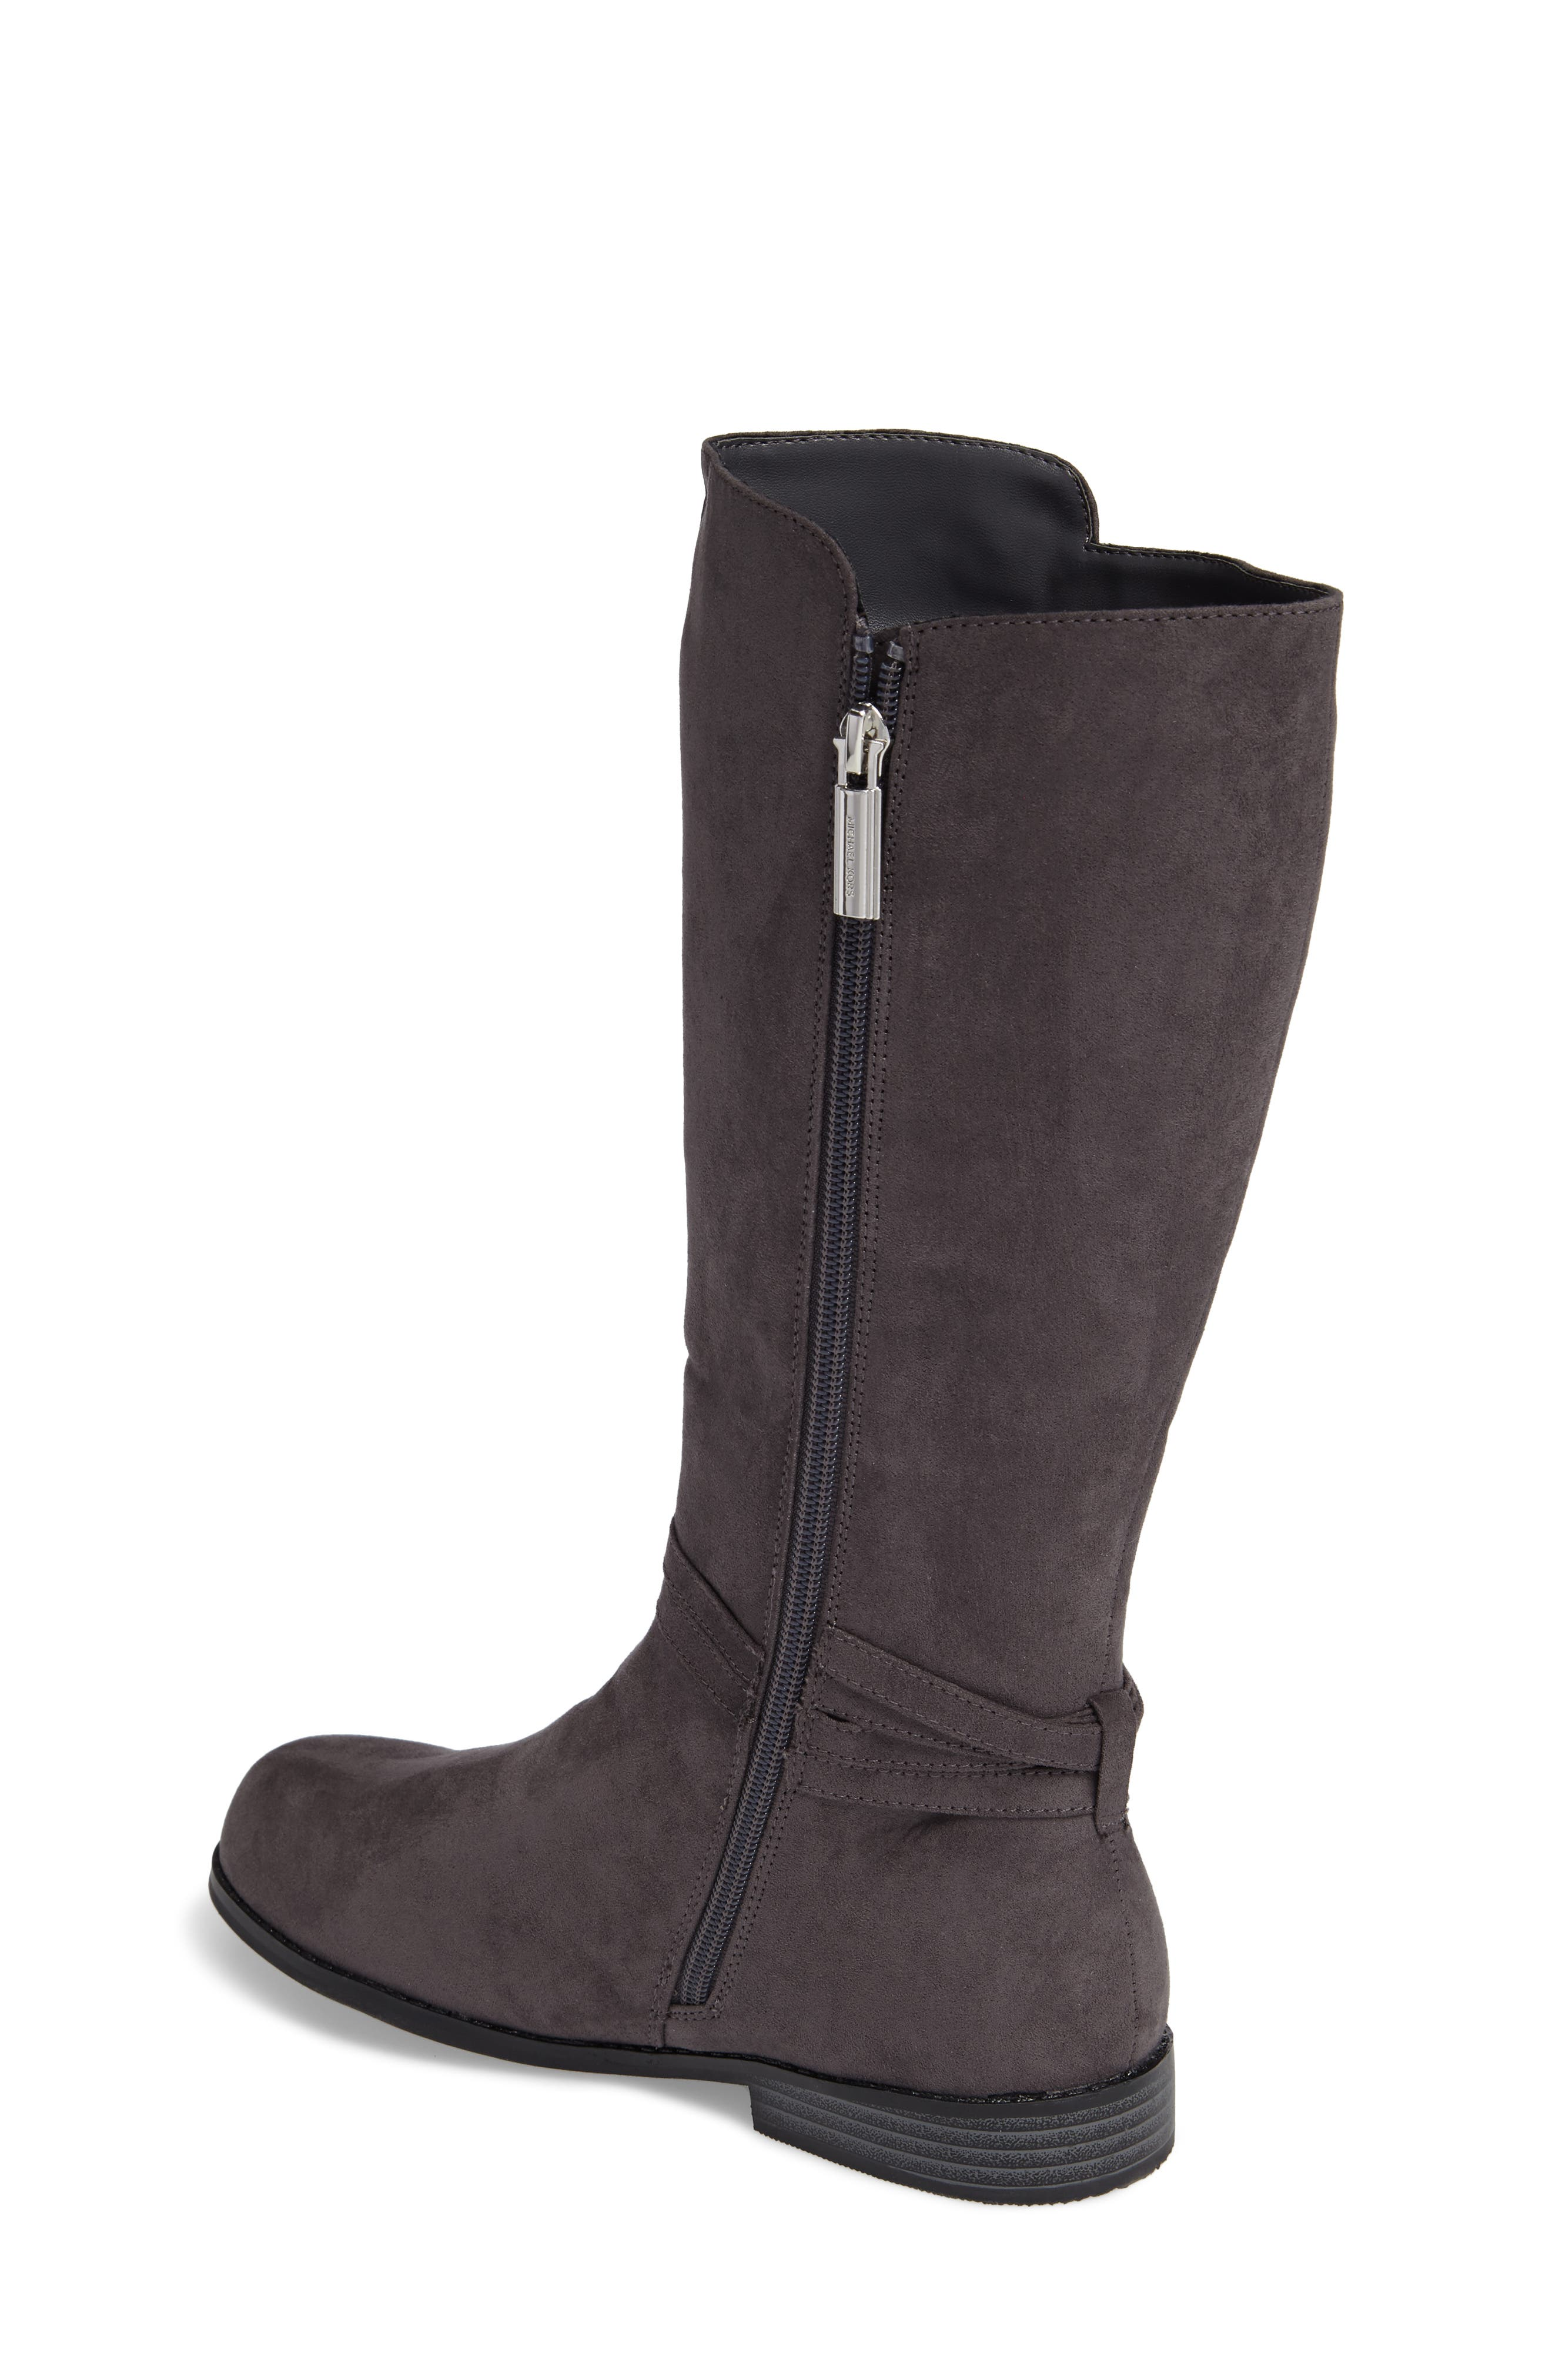 Emma Carter Knotted Boot,                             Alternate thumbnail 2, color,                             051